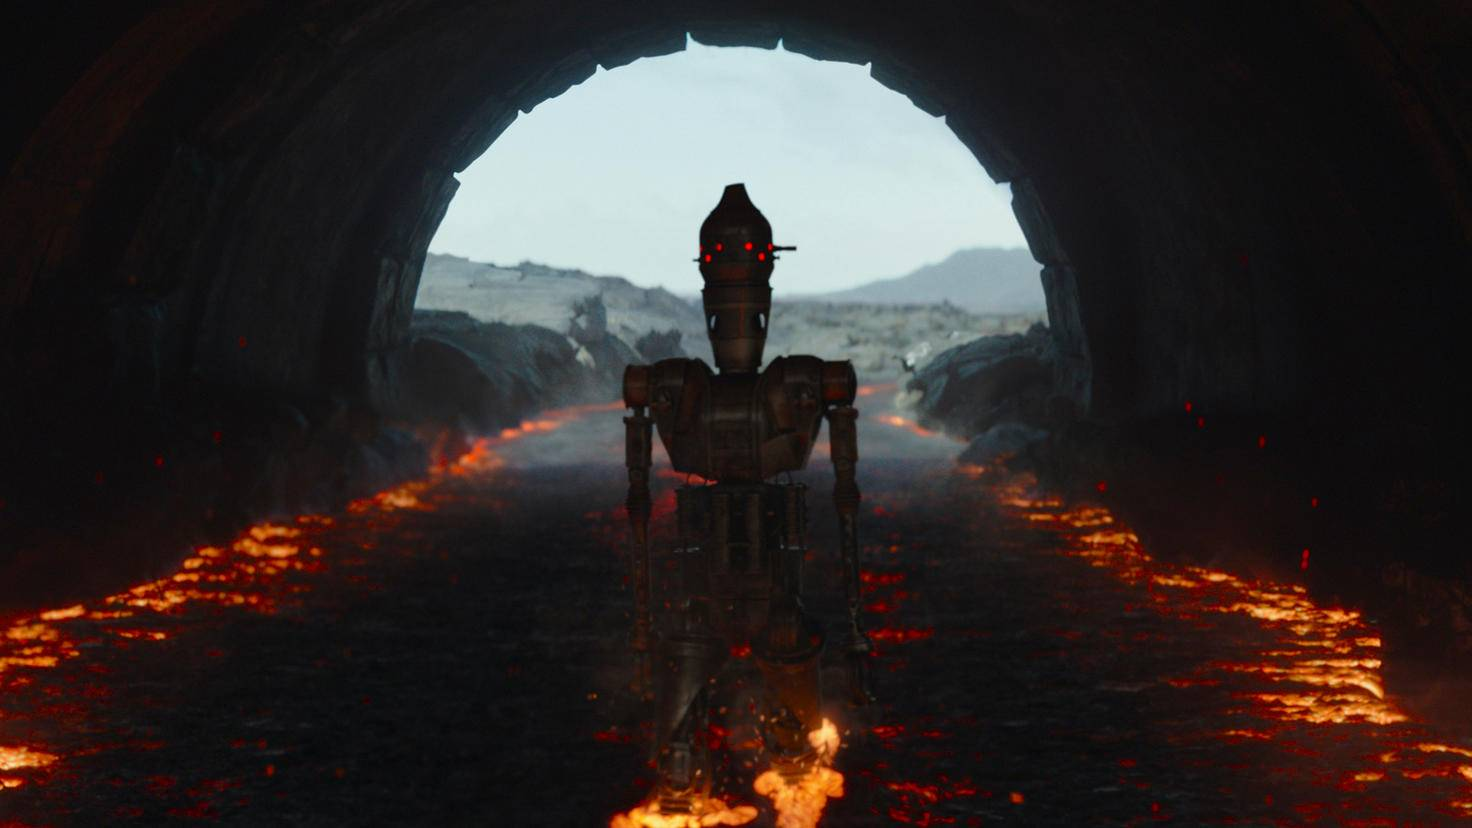 The Mandalorian IG-11 Taika Waititi S01E08